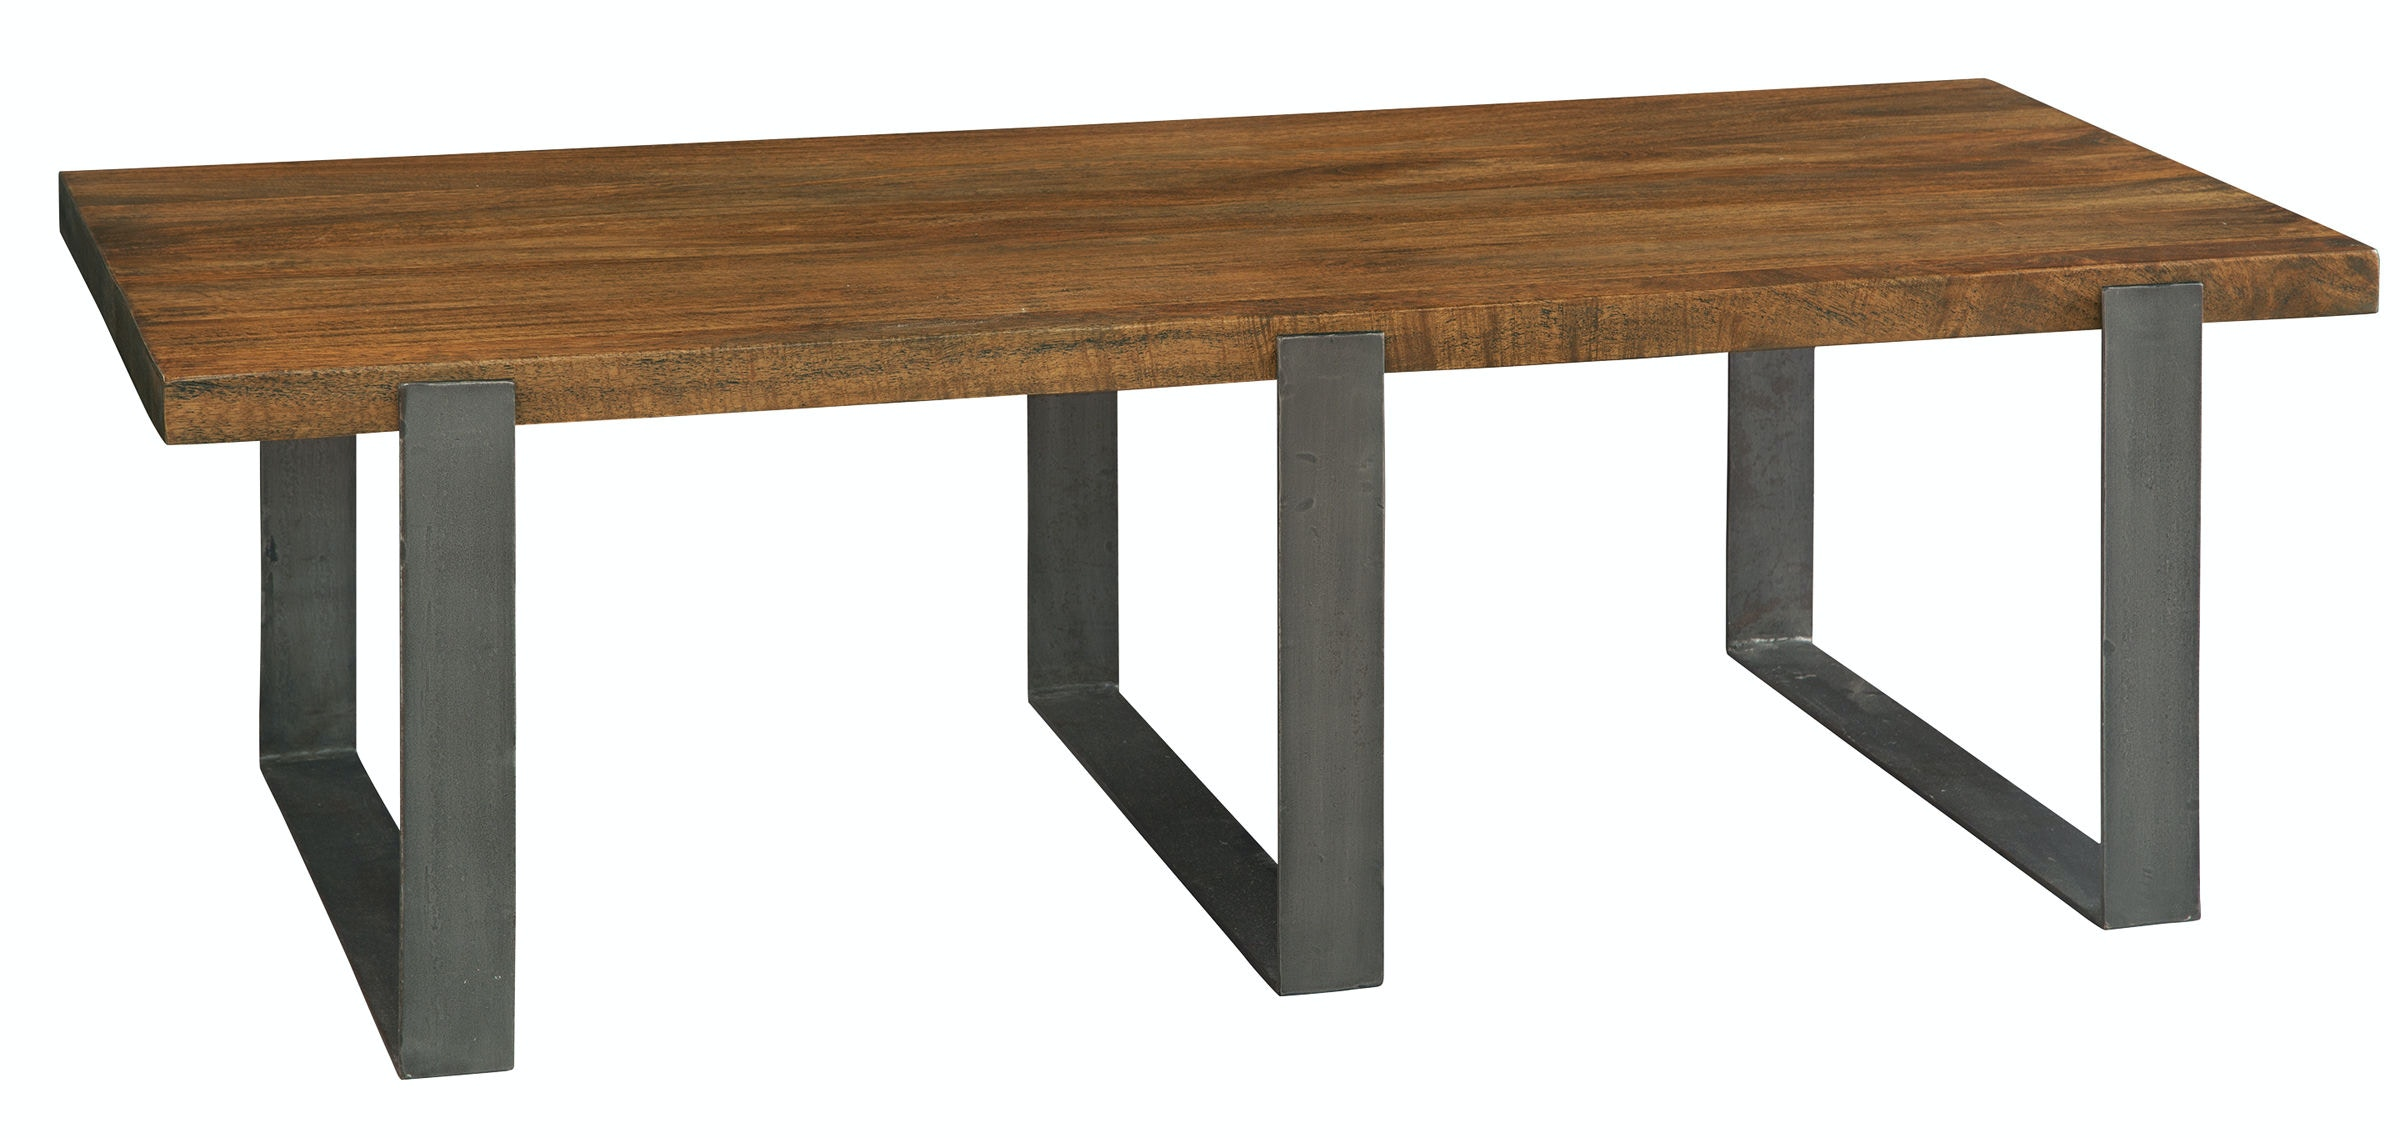 Iron Strapg Rect Cffe Table